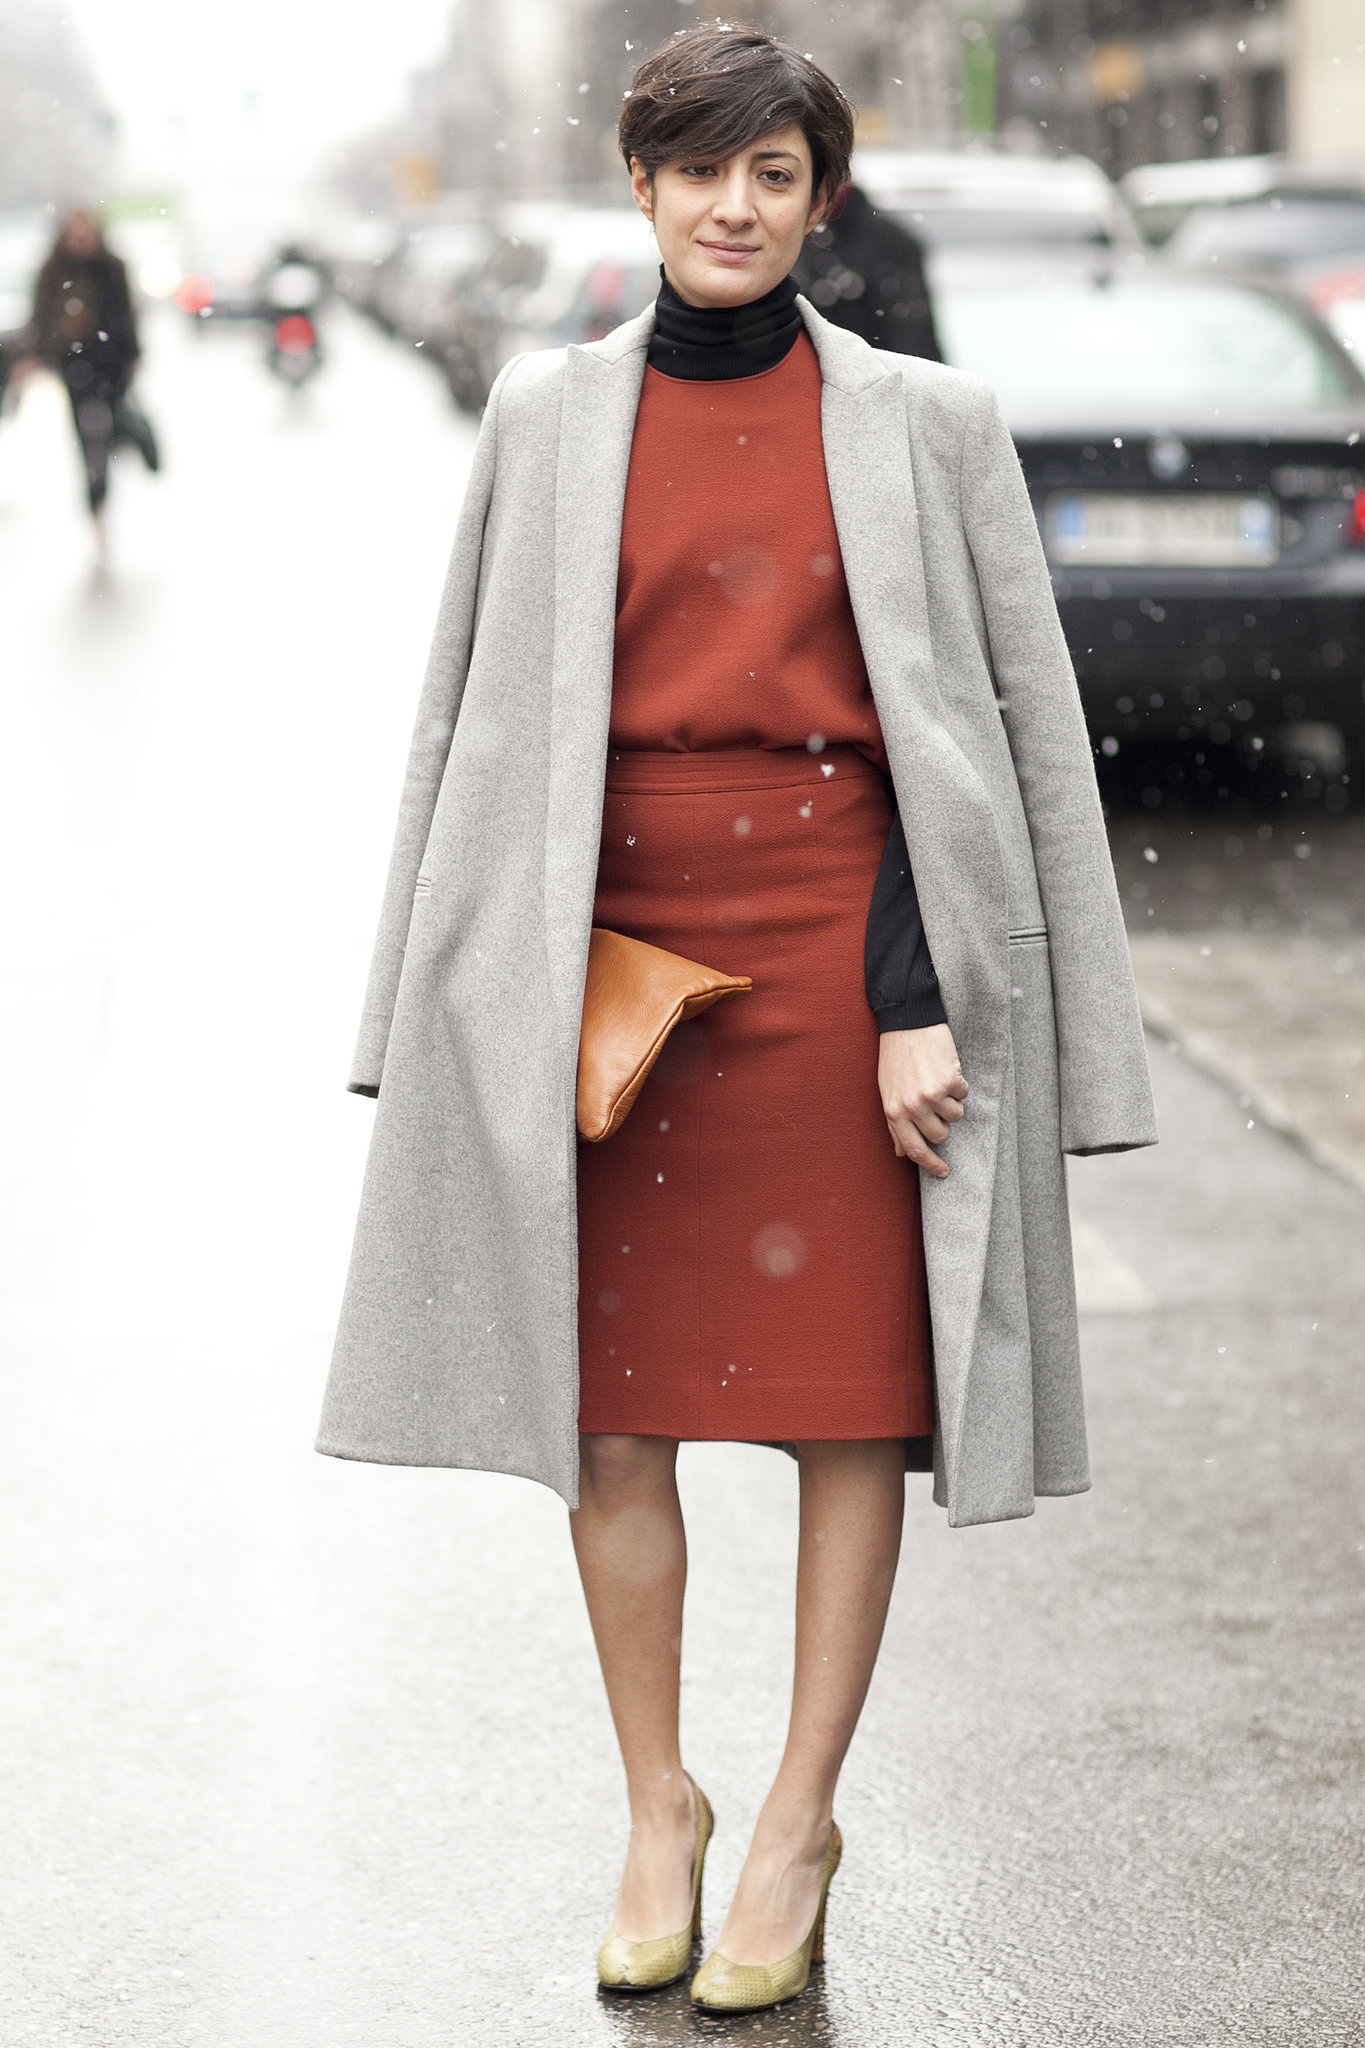 Perfect the minimalist vibe, then add warmth with a turtleneck underneath.